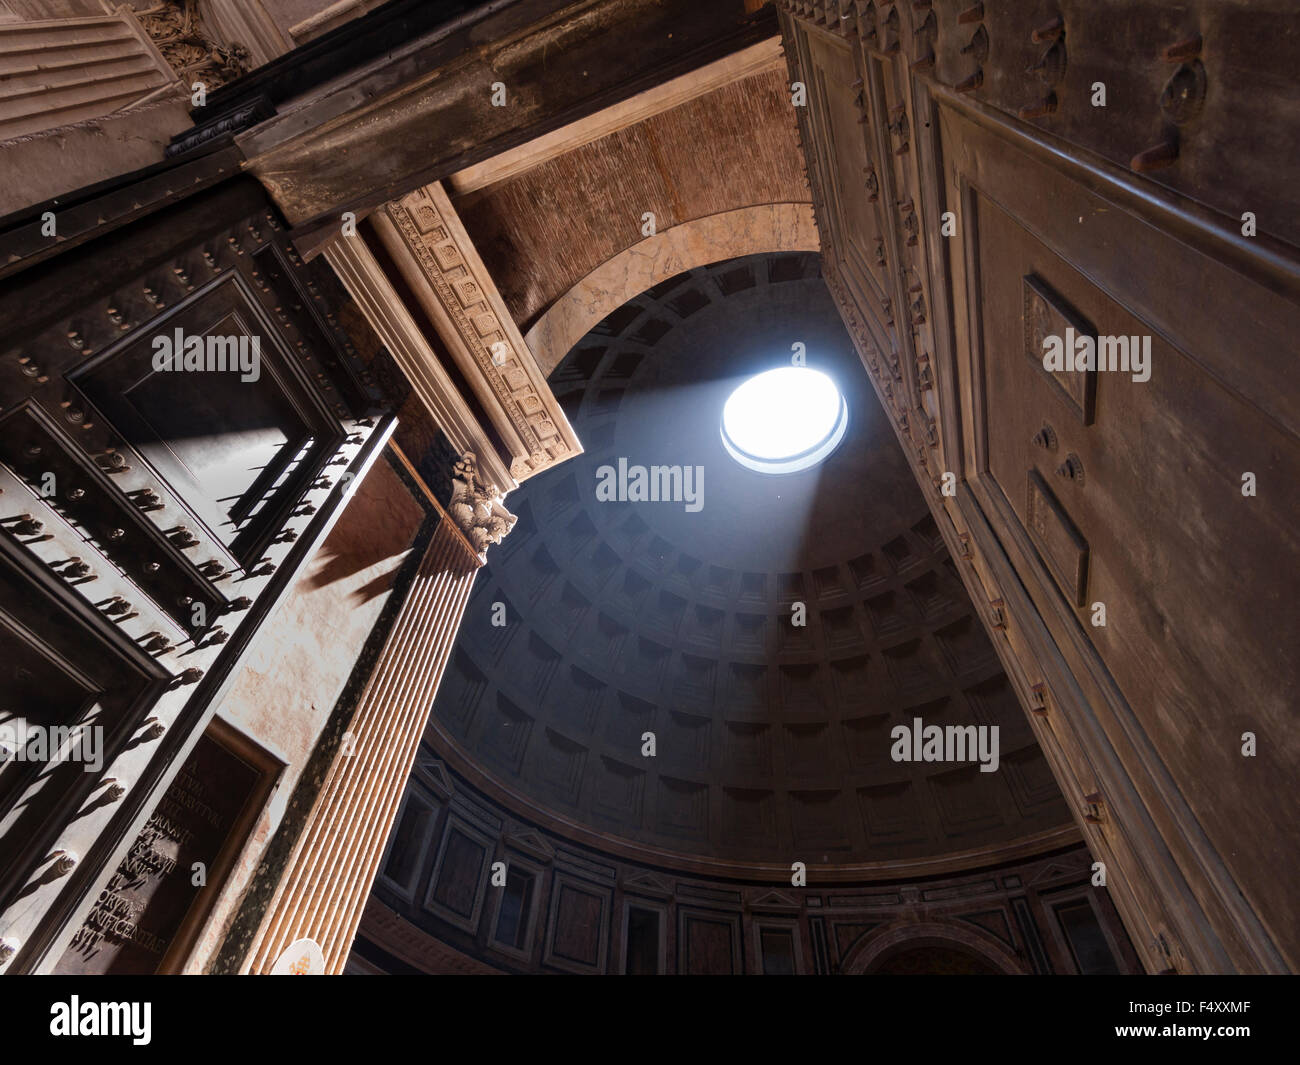 Sunlight is shining into the ancient Roman Pantheon temple through the characteristic hole in the middle of its Stock Photo